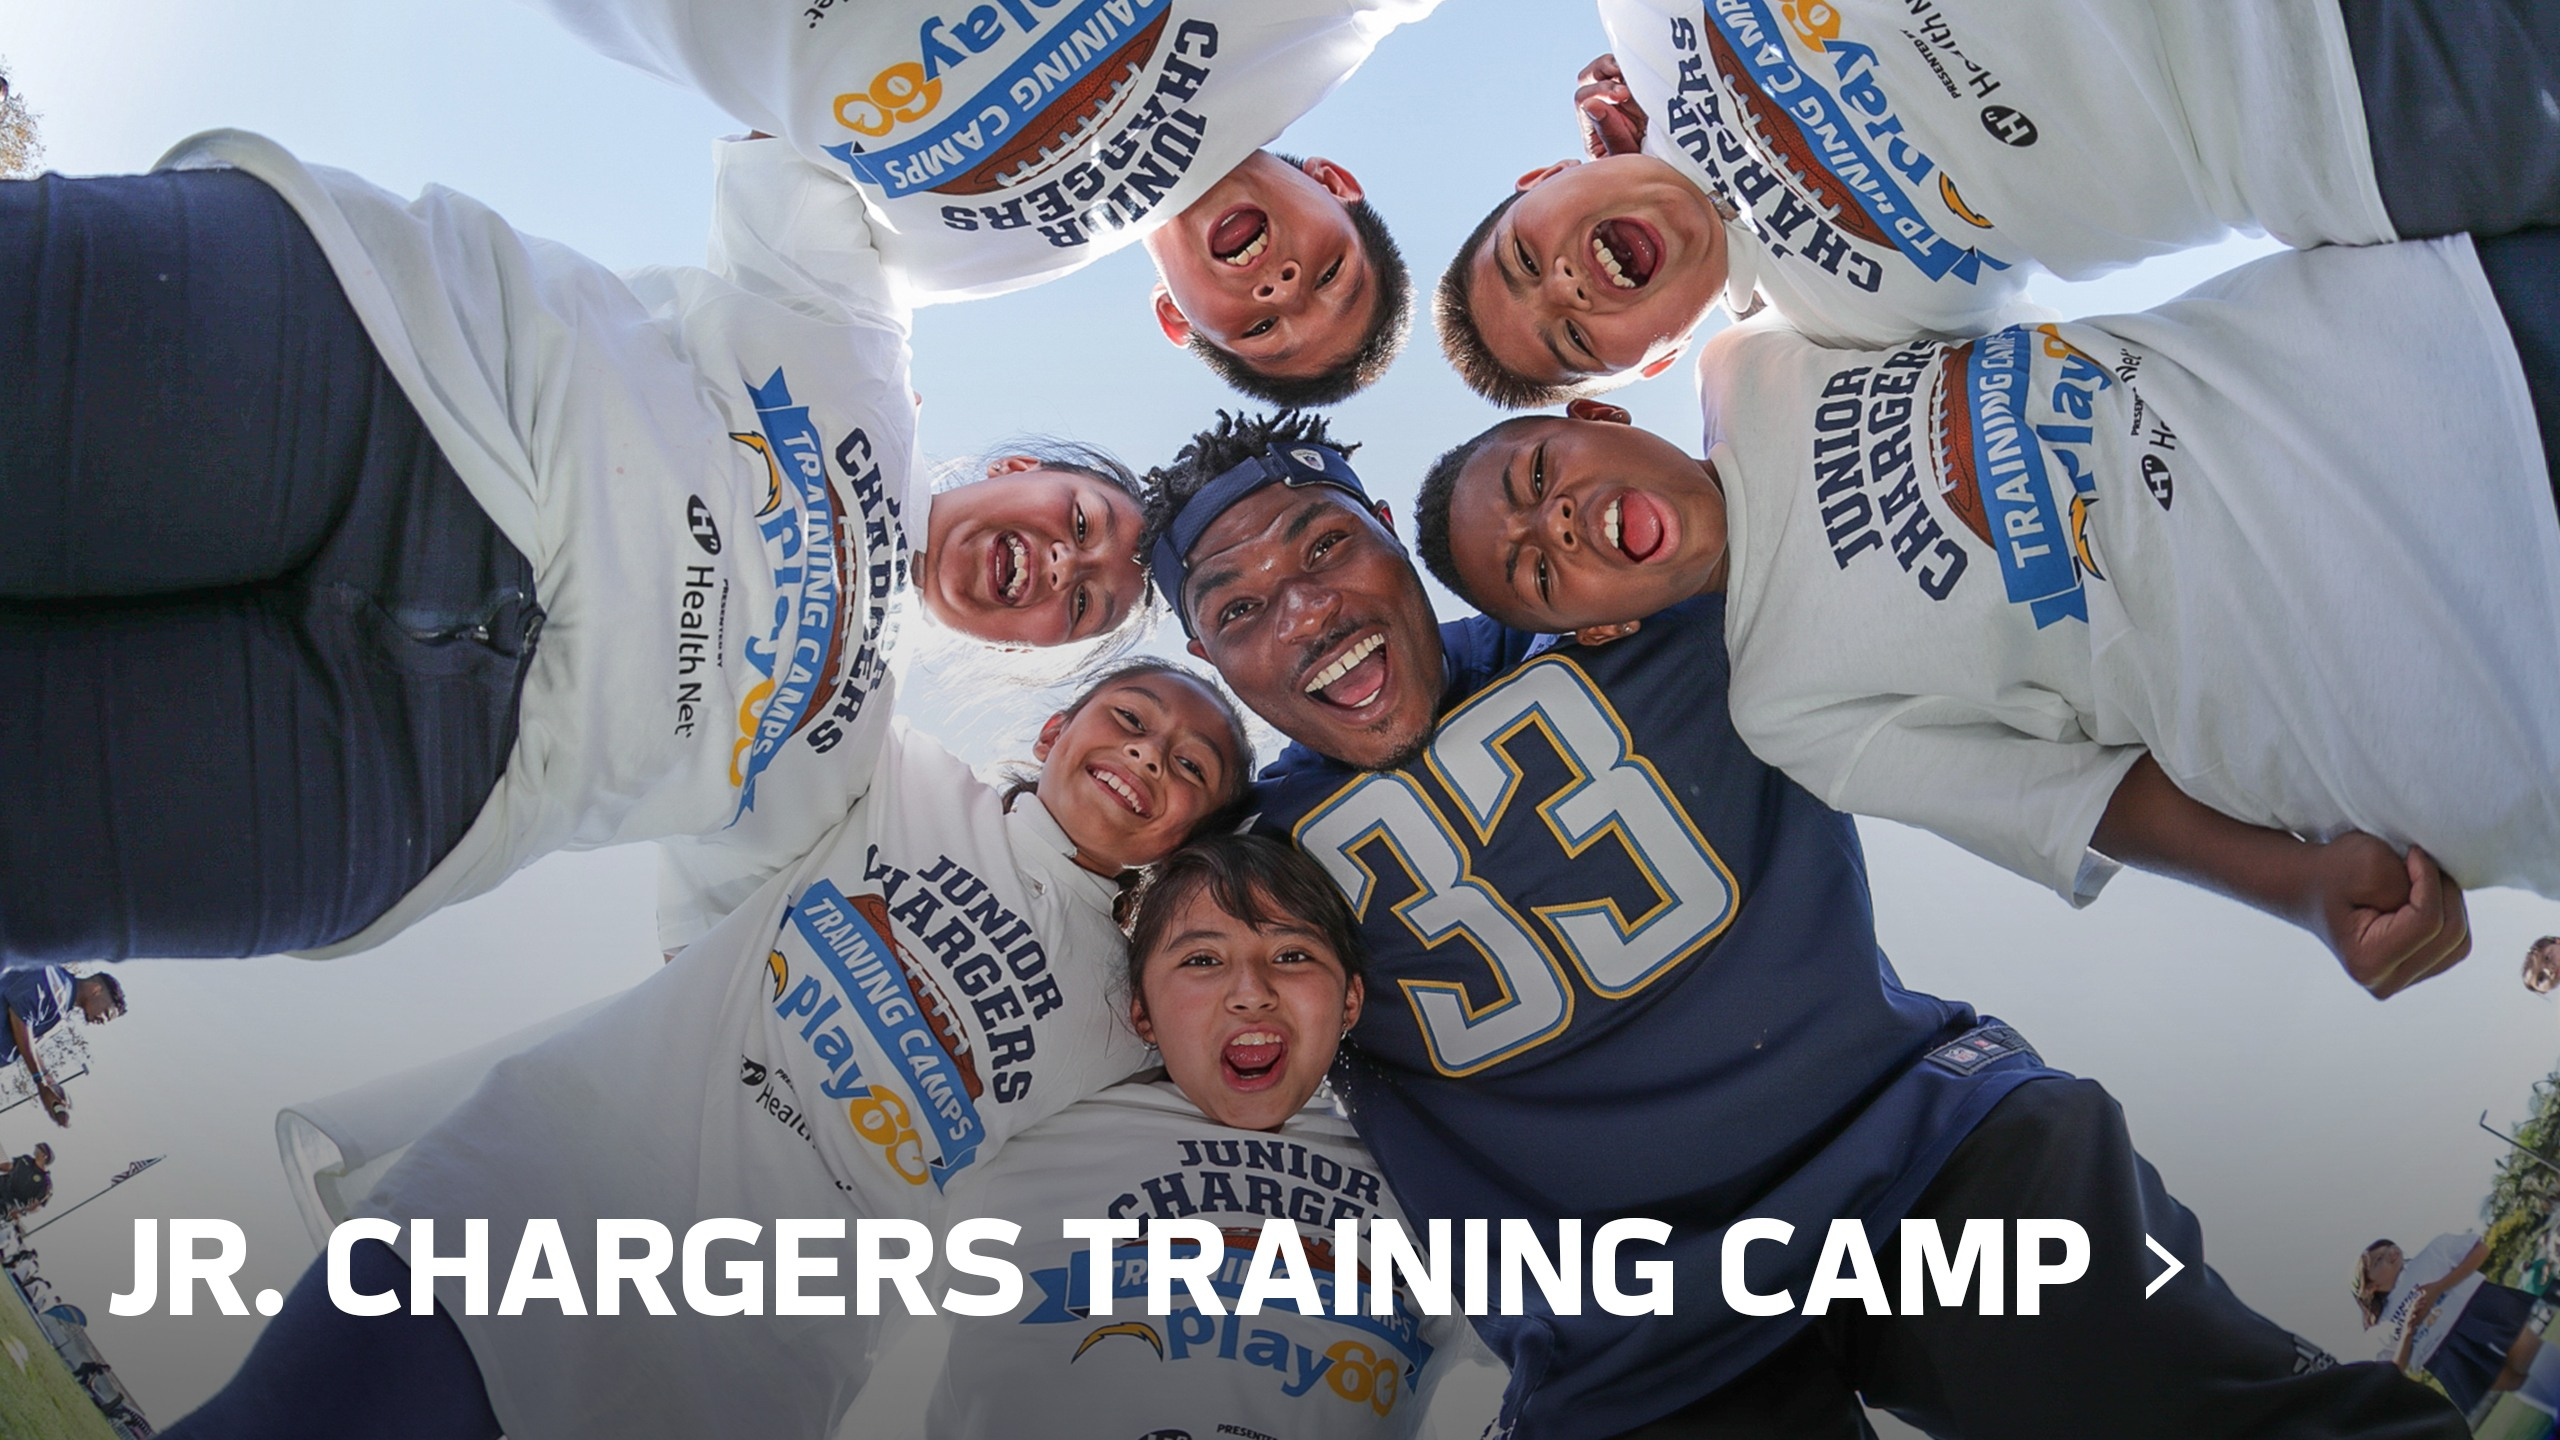 Jr. Chargers Training Camp